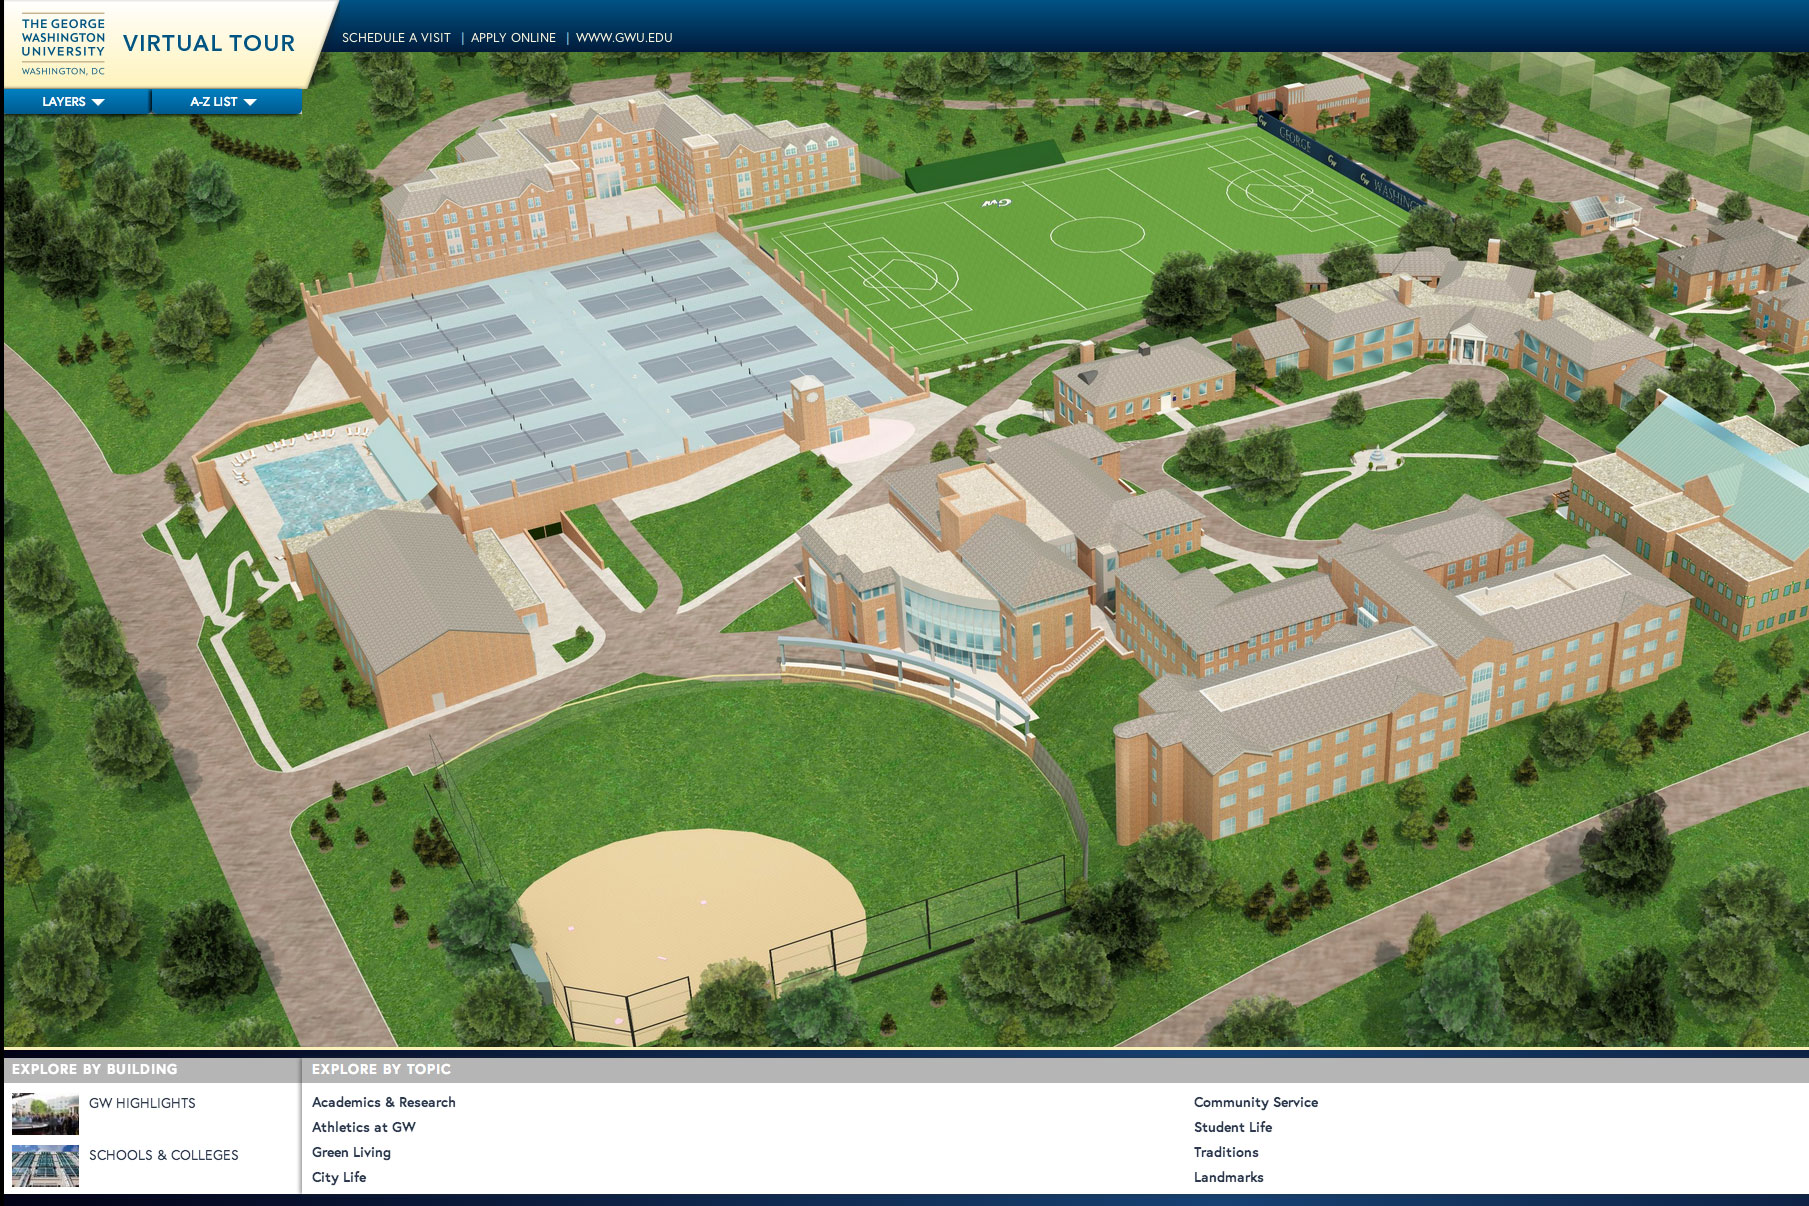 Gwu Mount Vernon Campus Map.Explore Campus And D C With The Gw Virtual Tour Gw Today The